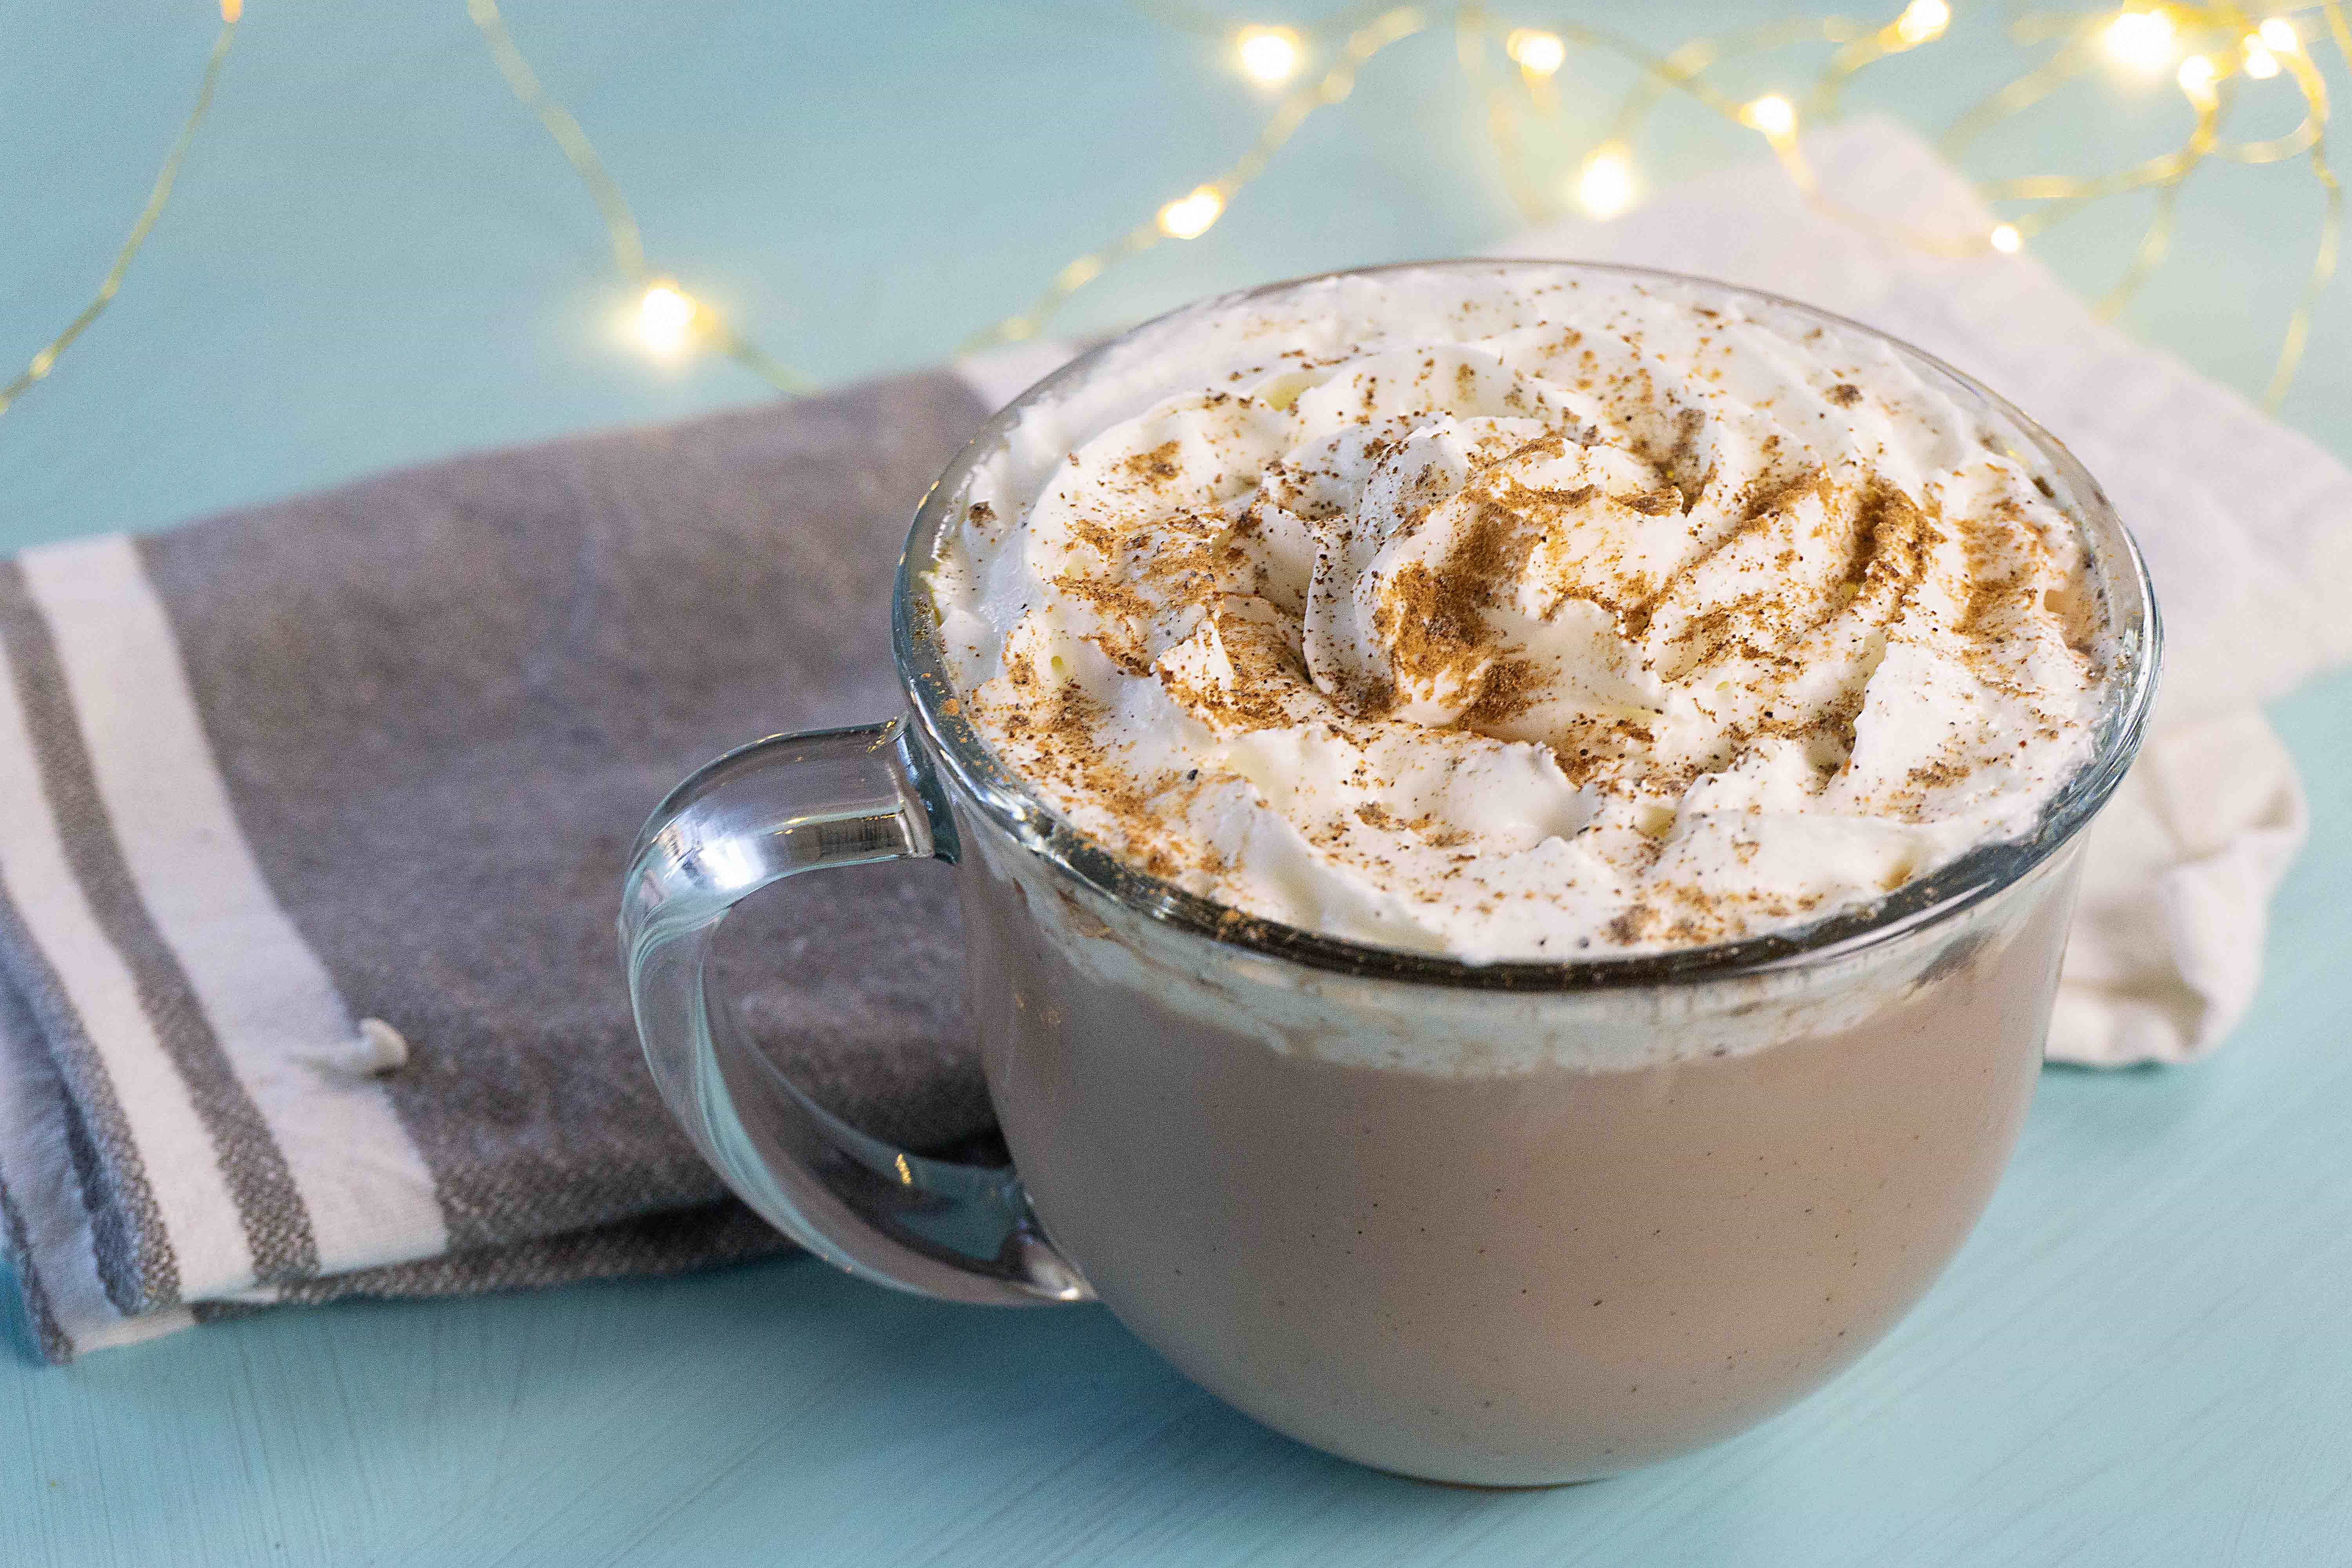 This yummy gingerbread recipe will warm you right up during the cold winter months and you likely have all the ingredients you need right in your pantry! This easy homemade recipe makes for the perfect hot drink in the winter time. Ingredients include cinnamon, clove, allspice and cardamon. #hotchocolate #warmdrinks #winterdrinks #homemadehotchocolate